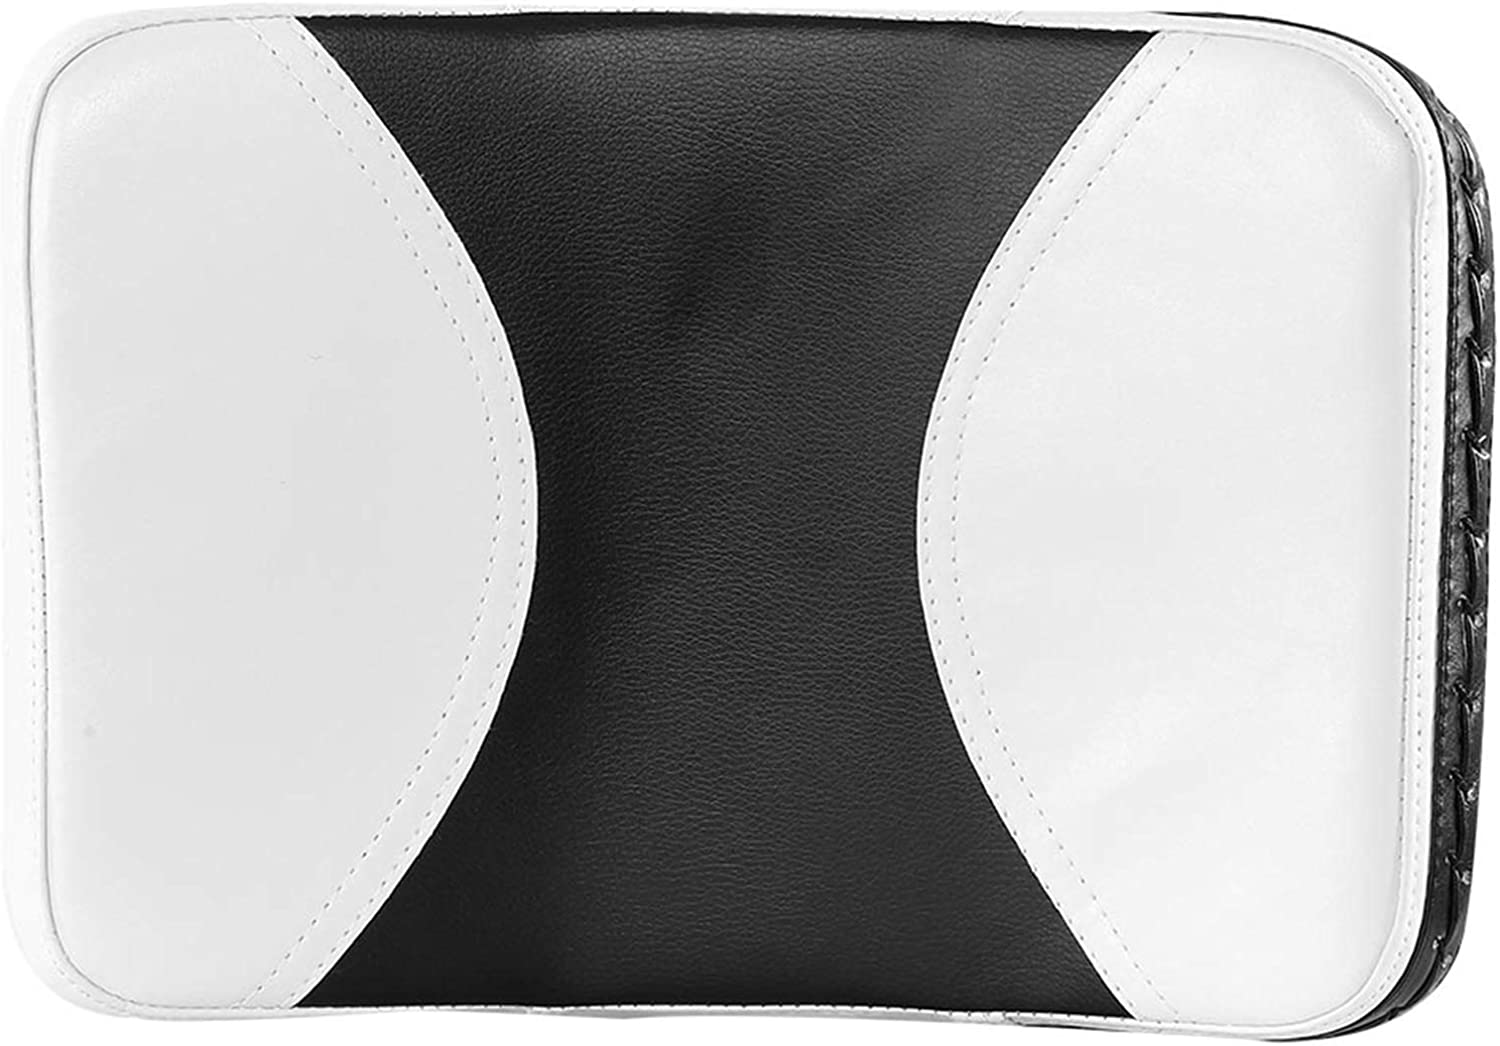 HAOX Sanda Department store OFFicial store Pad Karate PU for Durable Exercising Training